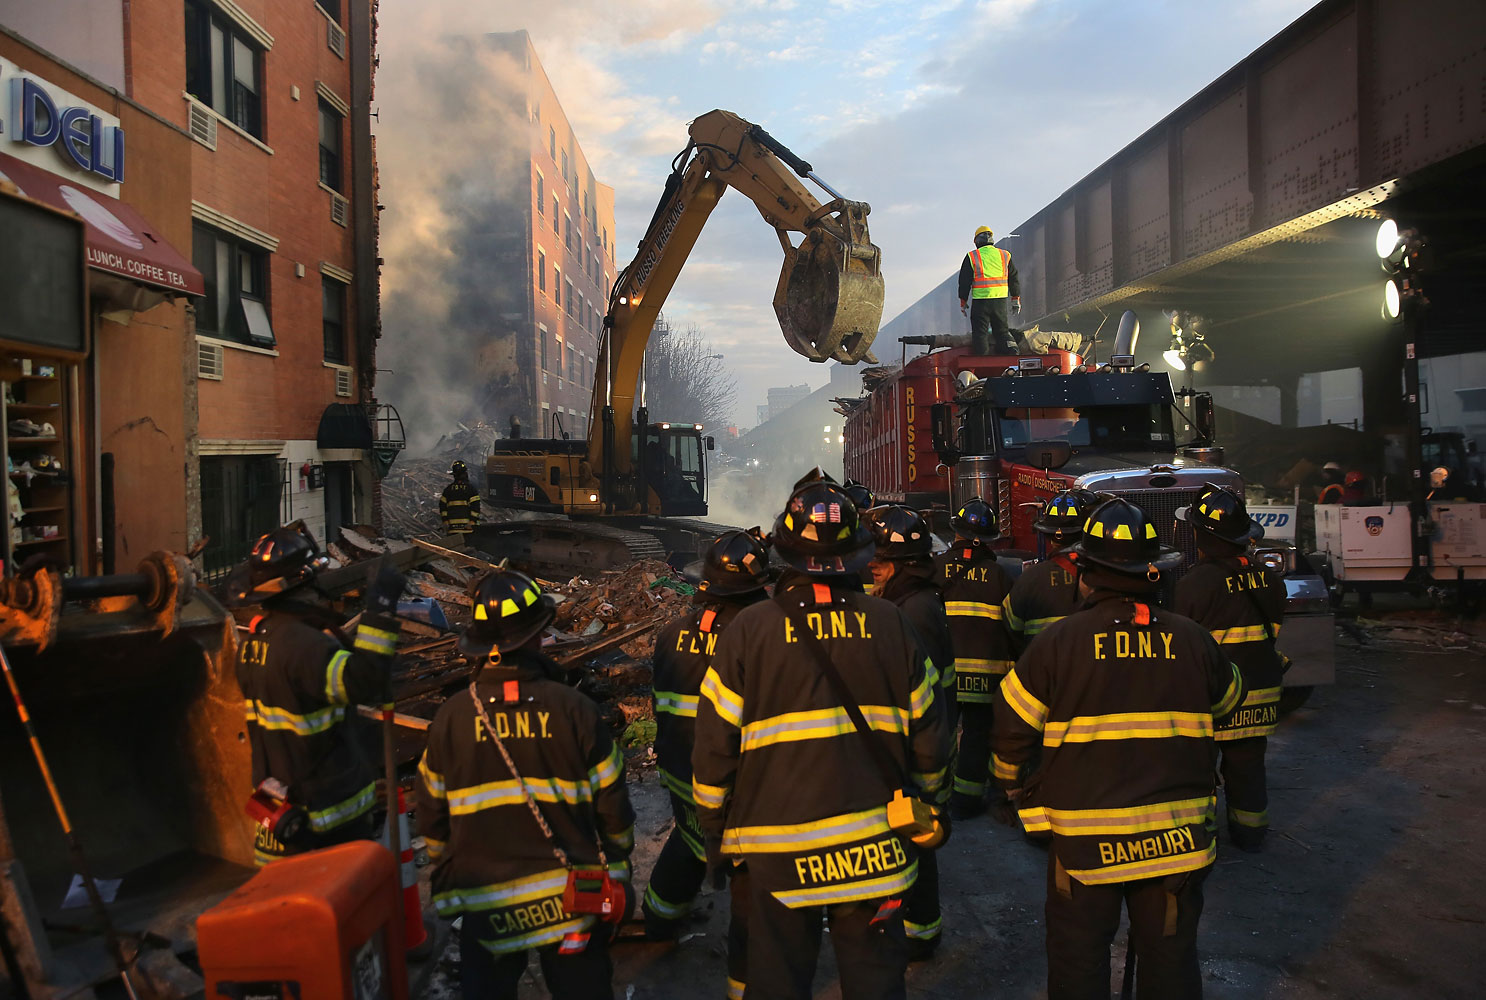 NEW YORK, NY - MARCH 13:  Firemen watch as work crews remove debris from the site of an explosion in East Harlem on March 13, 2014 in New York City. At least 7 people were killed, according to reports, in Wednesday's explosion which collapsed two buildings on Park Avenue at 116th Street.